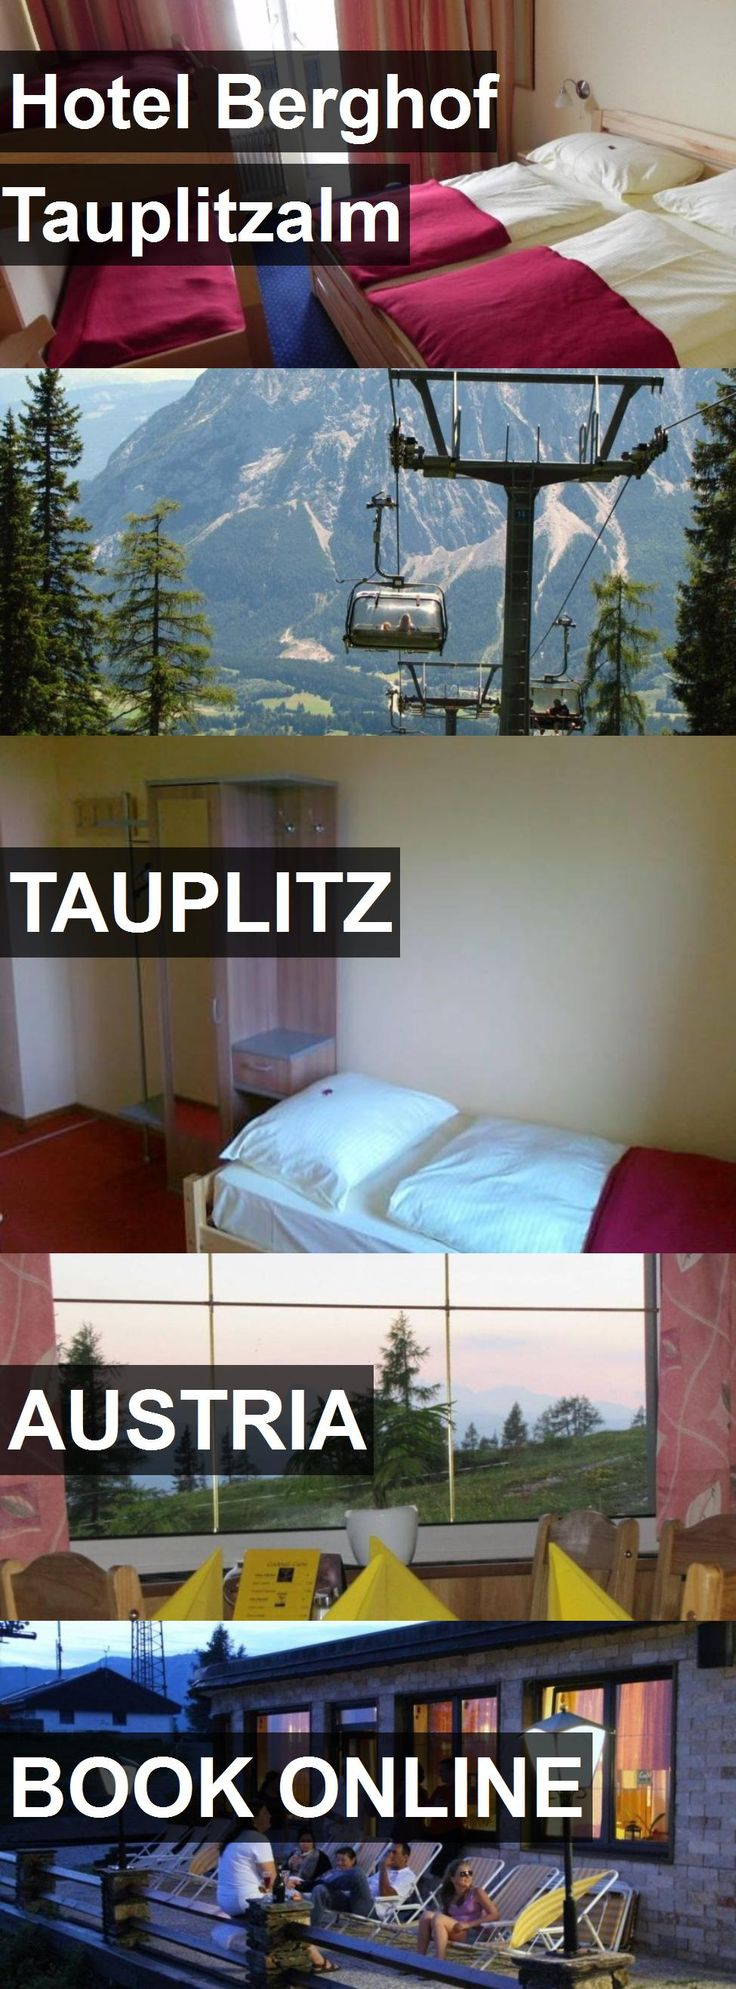 Hotel Hotel Berghof Tauplitzalm in Tauplitz, Austria. For more information, photos, reviews and best prices please follow the link. #Austria #Tauplitz #HotelBerghofTauplitzalm #hotel #travel #vacation